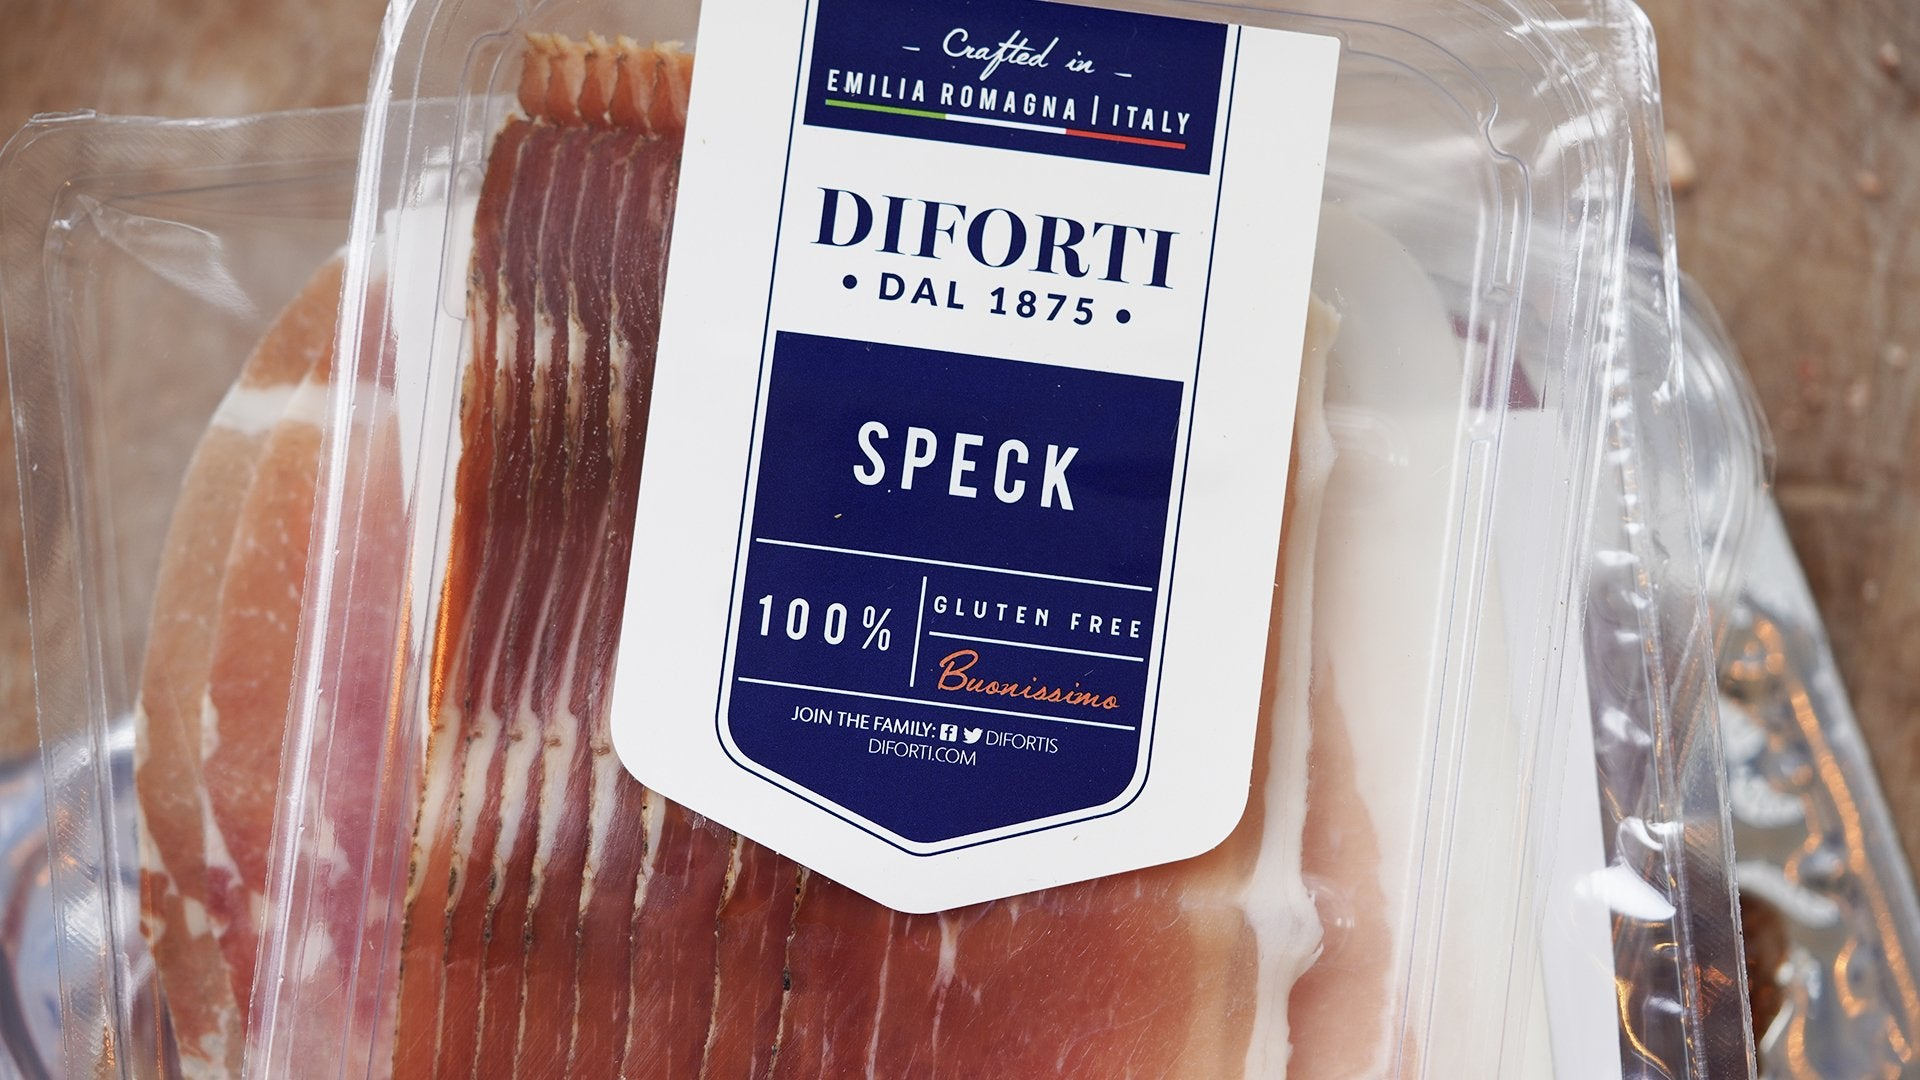 Diforti Speck for sale - Parsons Nose